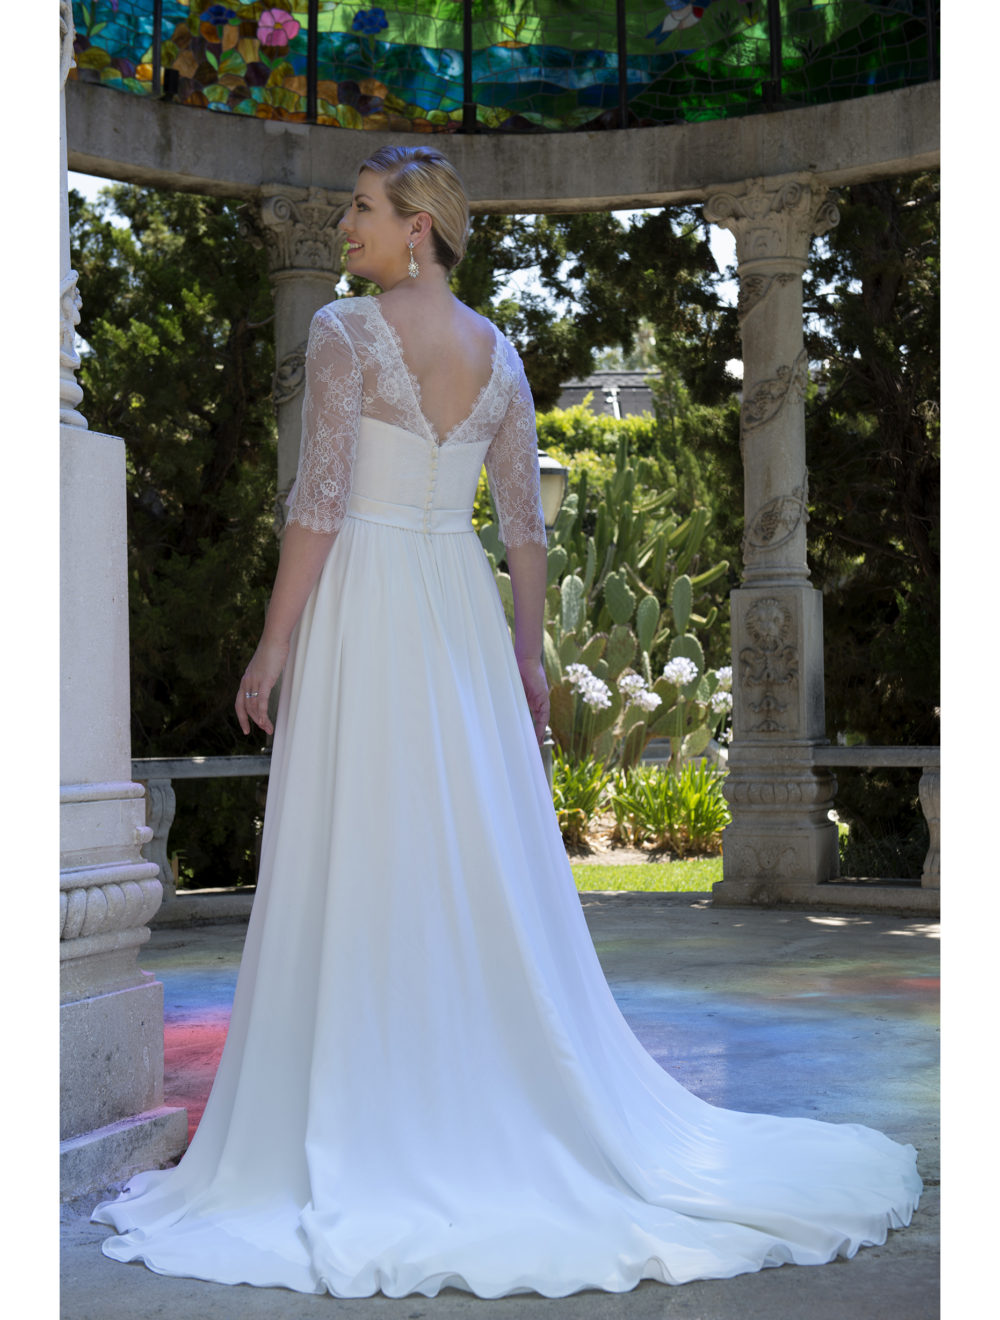 US $118.43 29% OFF|Informal Modest Plus Size Wedding Dresses With 3/4  Sleeves 2019 Big Size Lace Chiffon Reception Bridal Gowns Country  Western-in ...